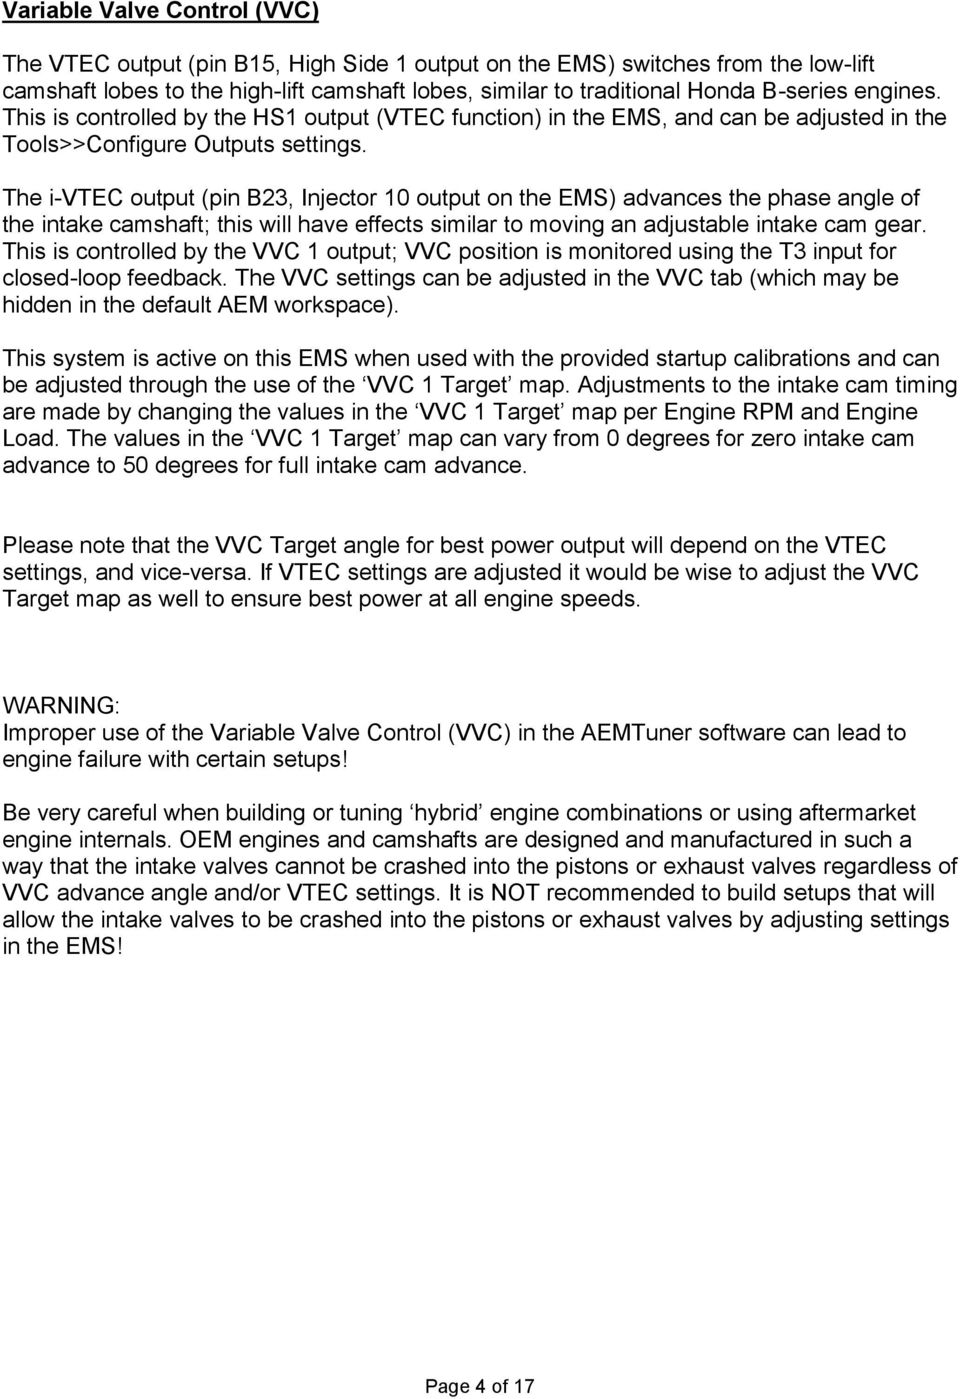 medium resolution of the i vtec output pin b23 injector 10 output on the ems